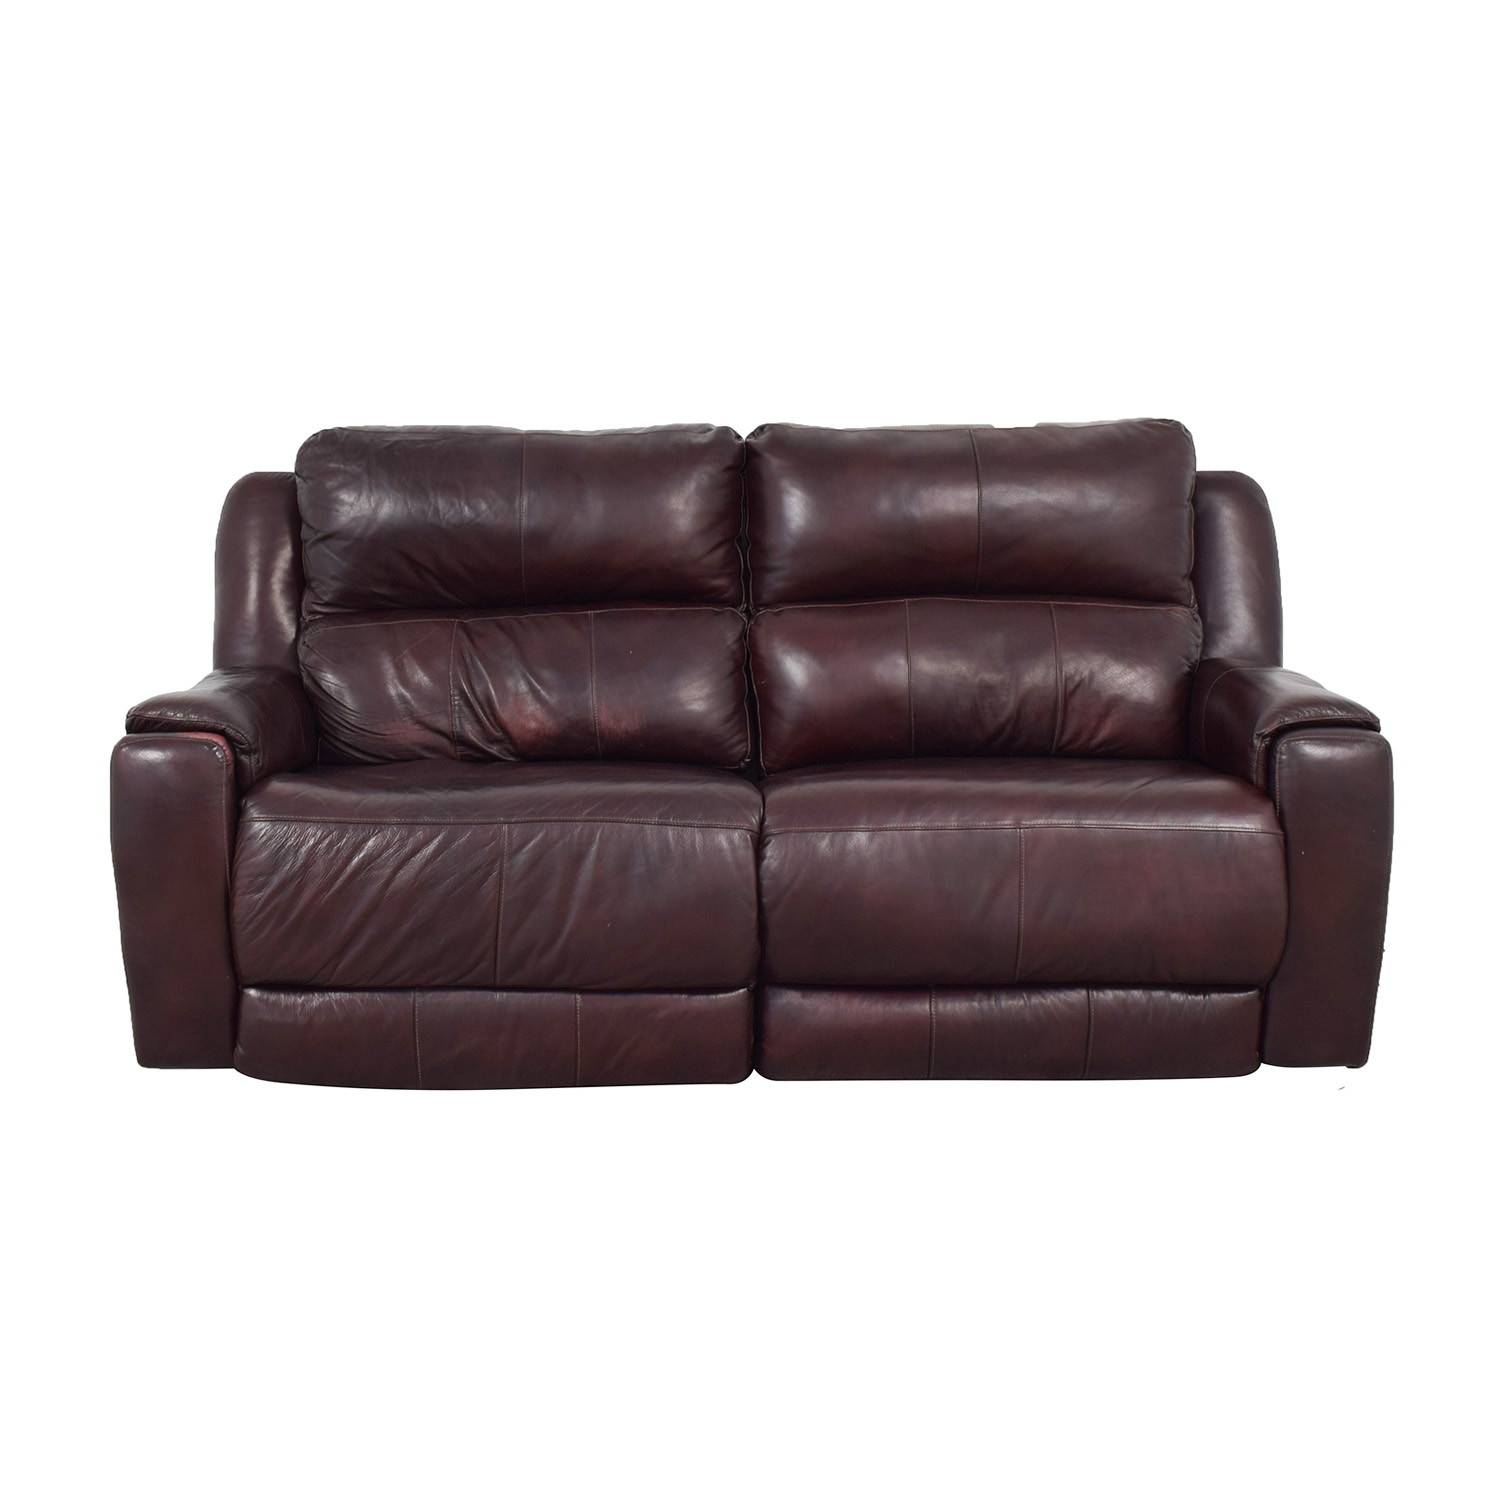 Raymour & Flanigan Raymour & Flanigan Brown Leather Electric Recliner